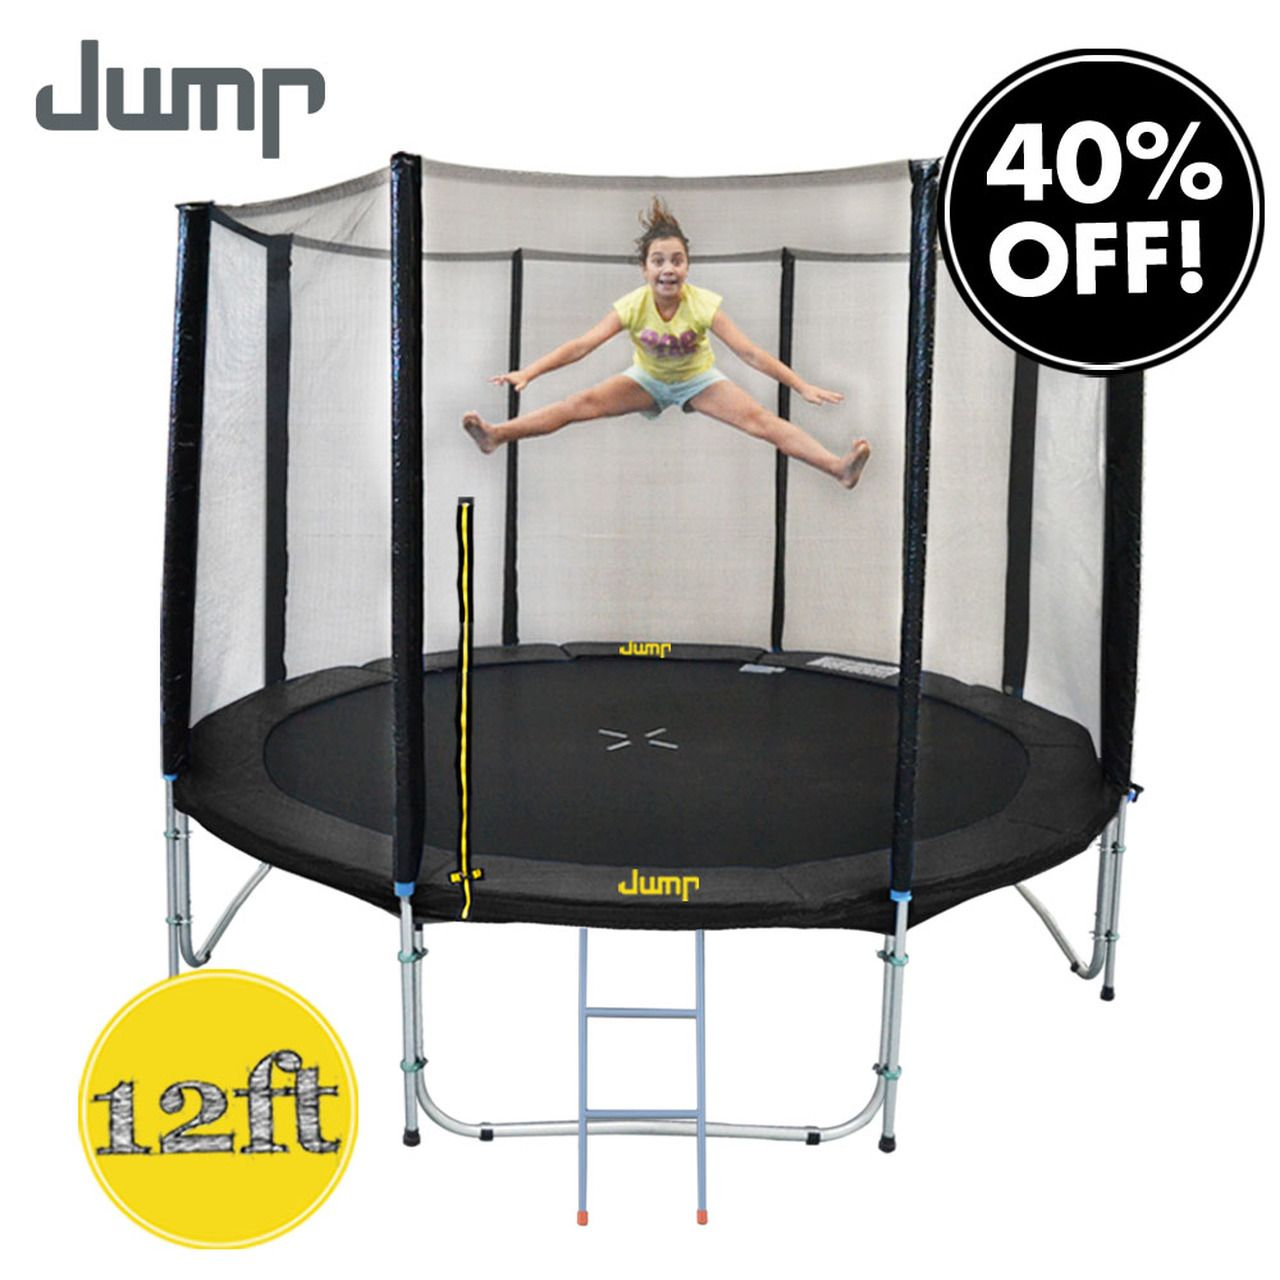 12ft Jump Trampoline With Net Ladder 8ft Trampoline Trampoline 8ft